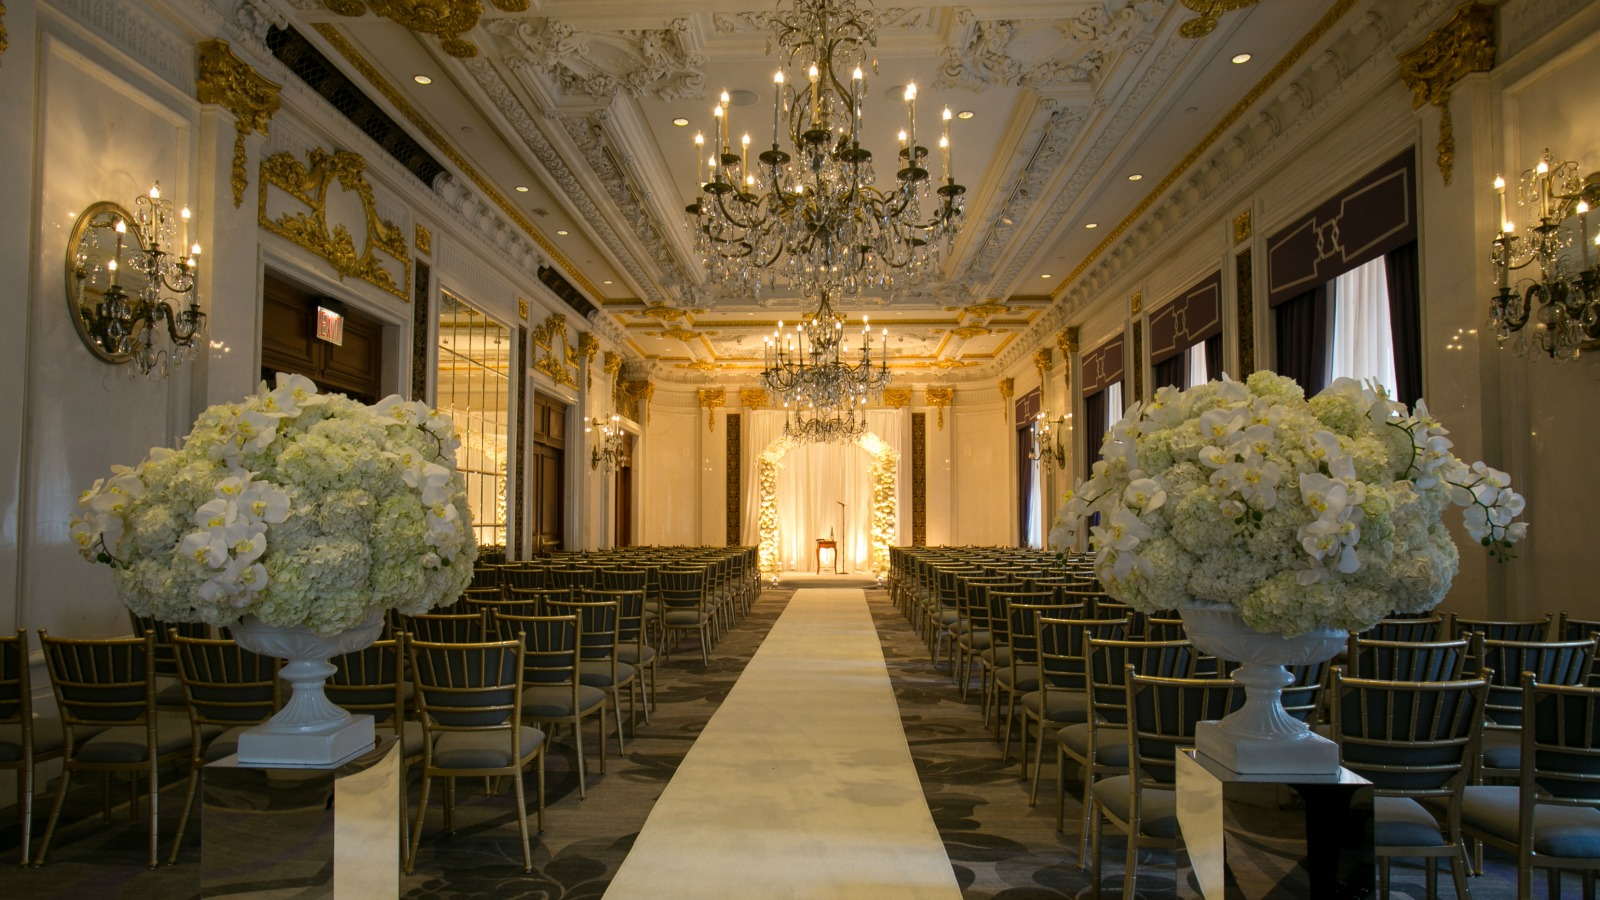 Wedding venues manhattan nyc the st regis new york for Wedding venues near york